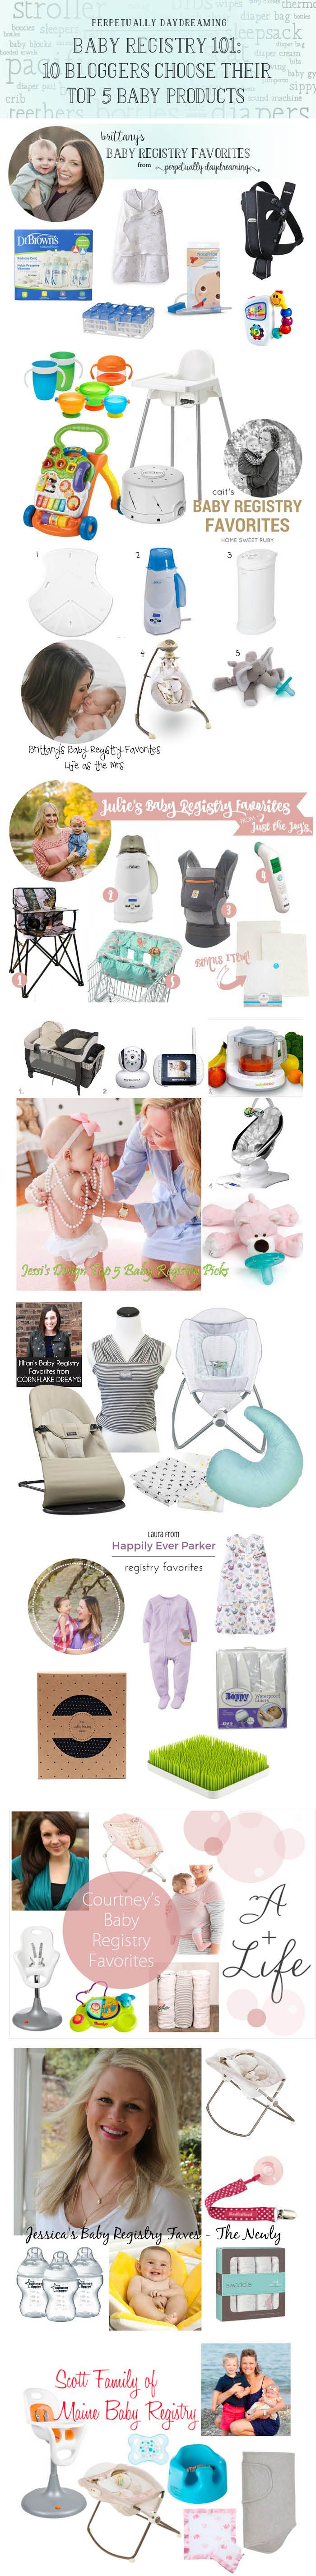 Baby Registry 101: 10 Mama Bloggers Pick Their Top 5 Baby Products - Perpetually Daydreaming